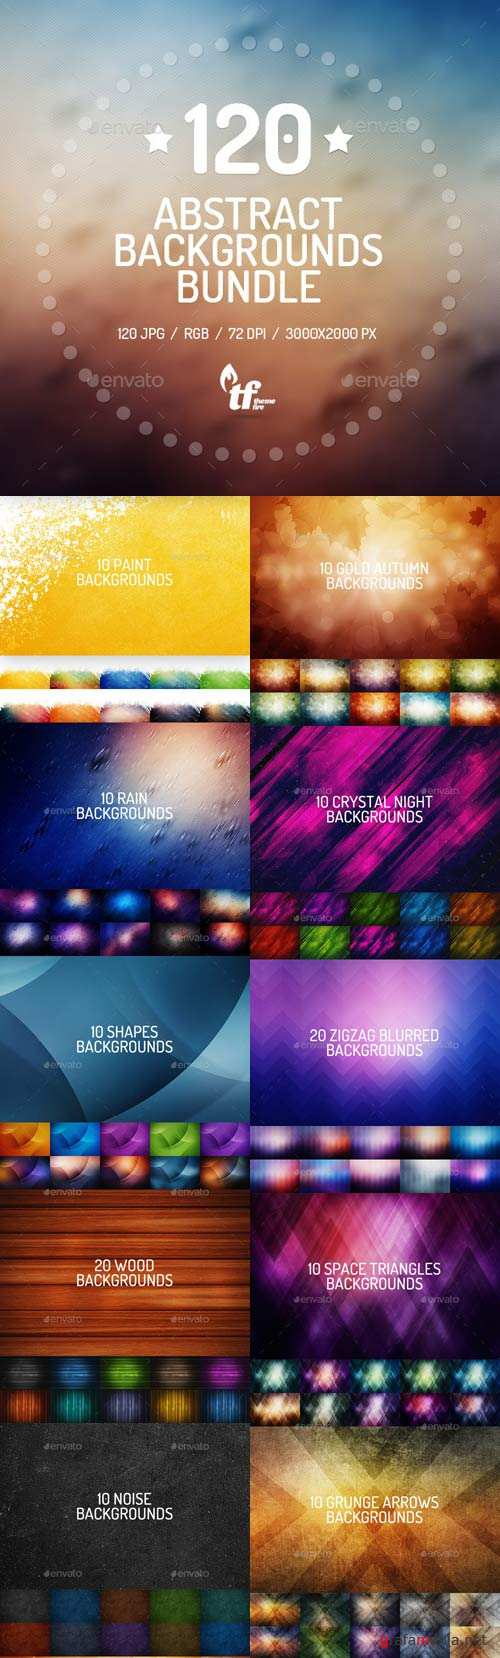 120 Abstract Backgrounds Bundle